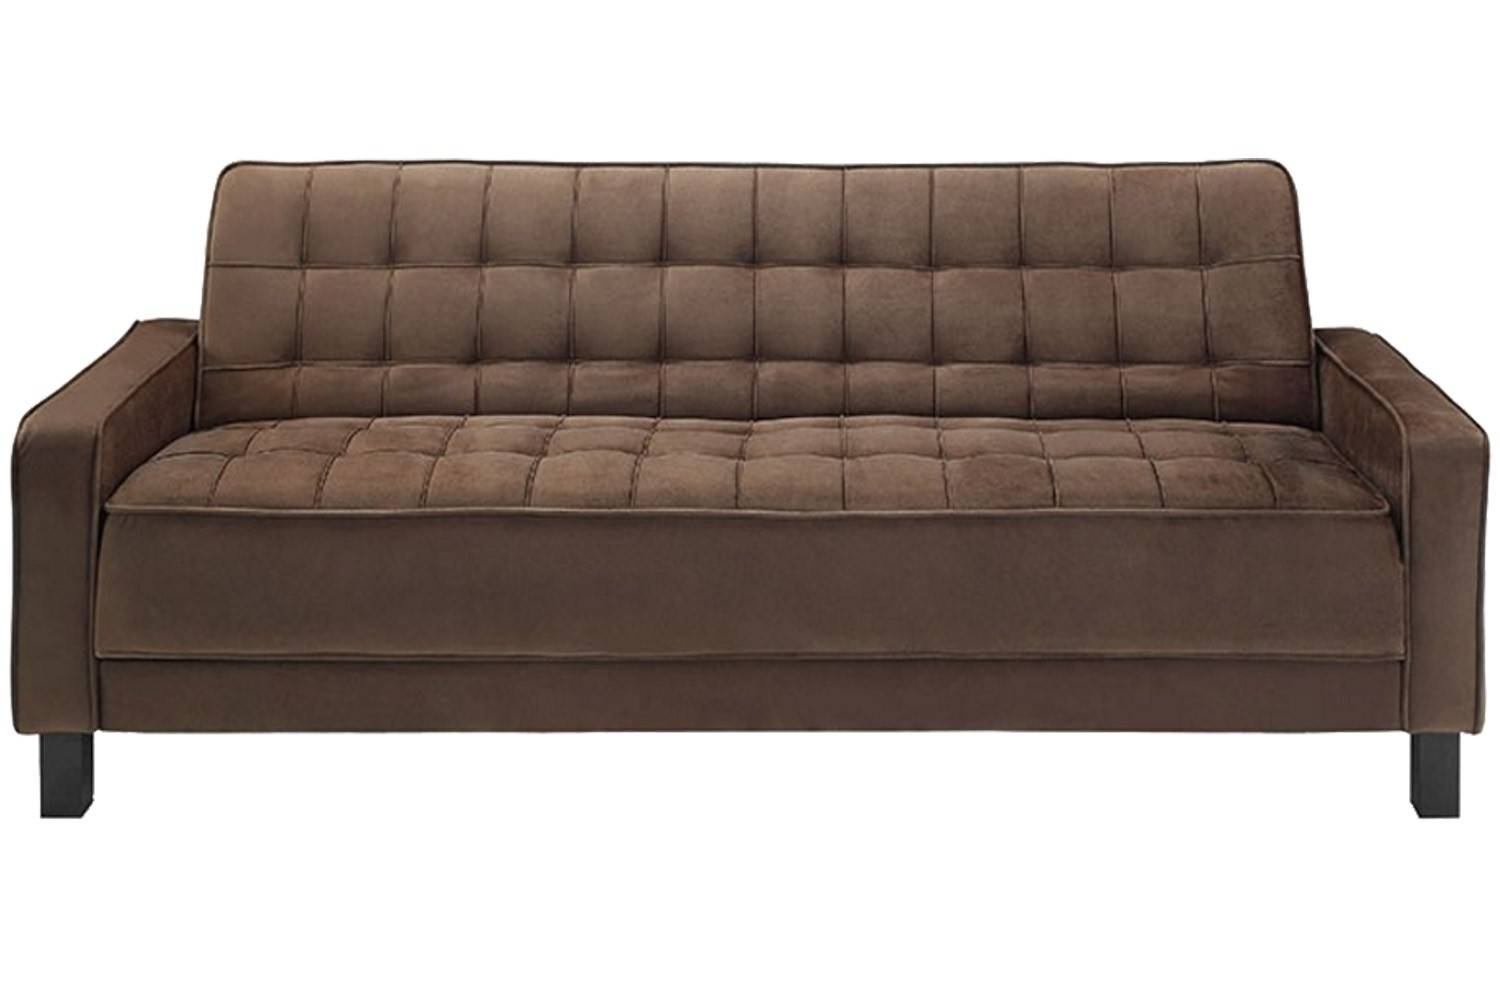 Convertible Mckinley Brown Sofa Bed | Mckinley Brown Euro Lounger Intended For Euro Loungers (View 13 of 15)